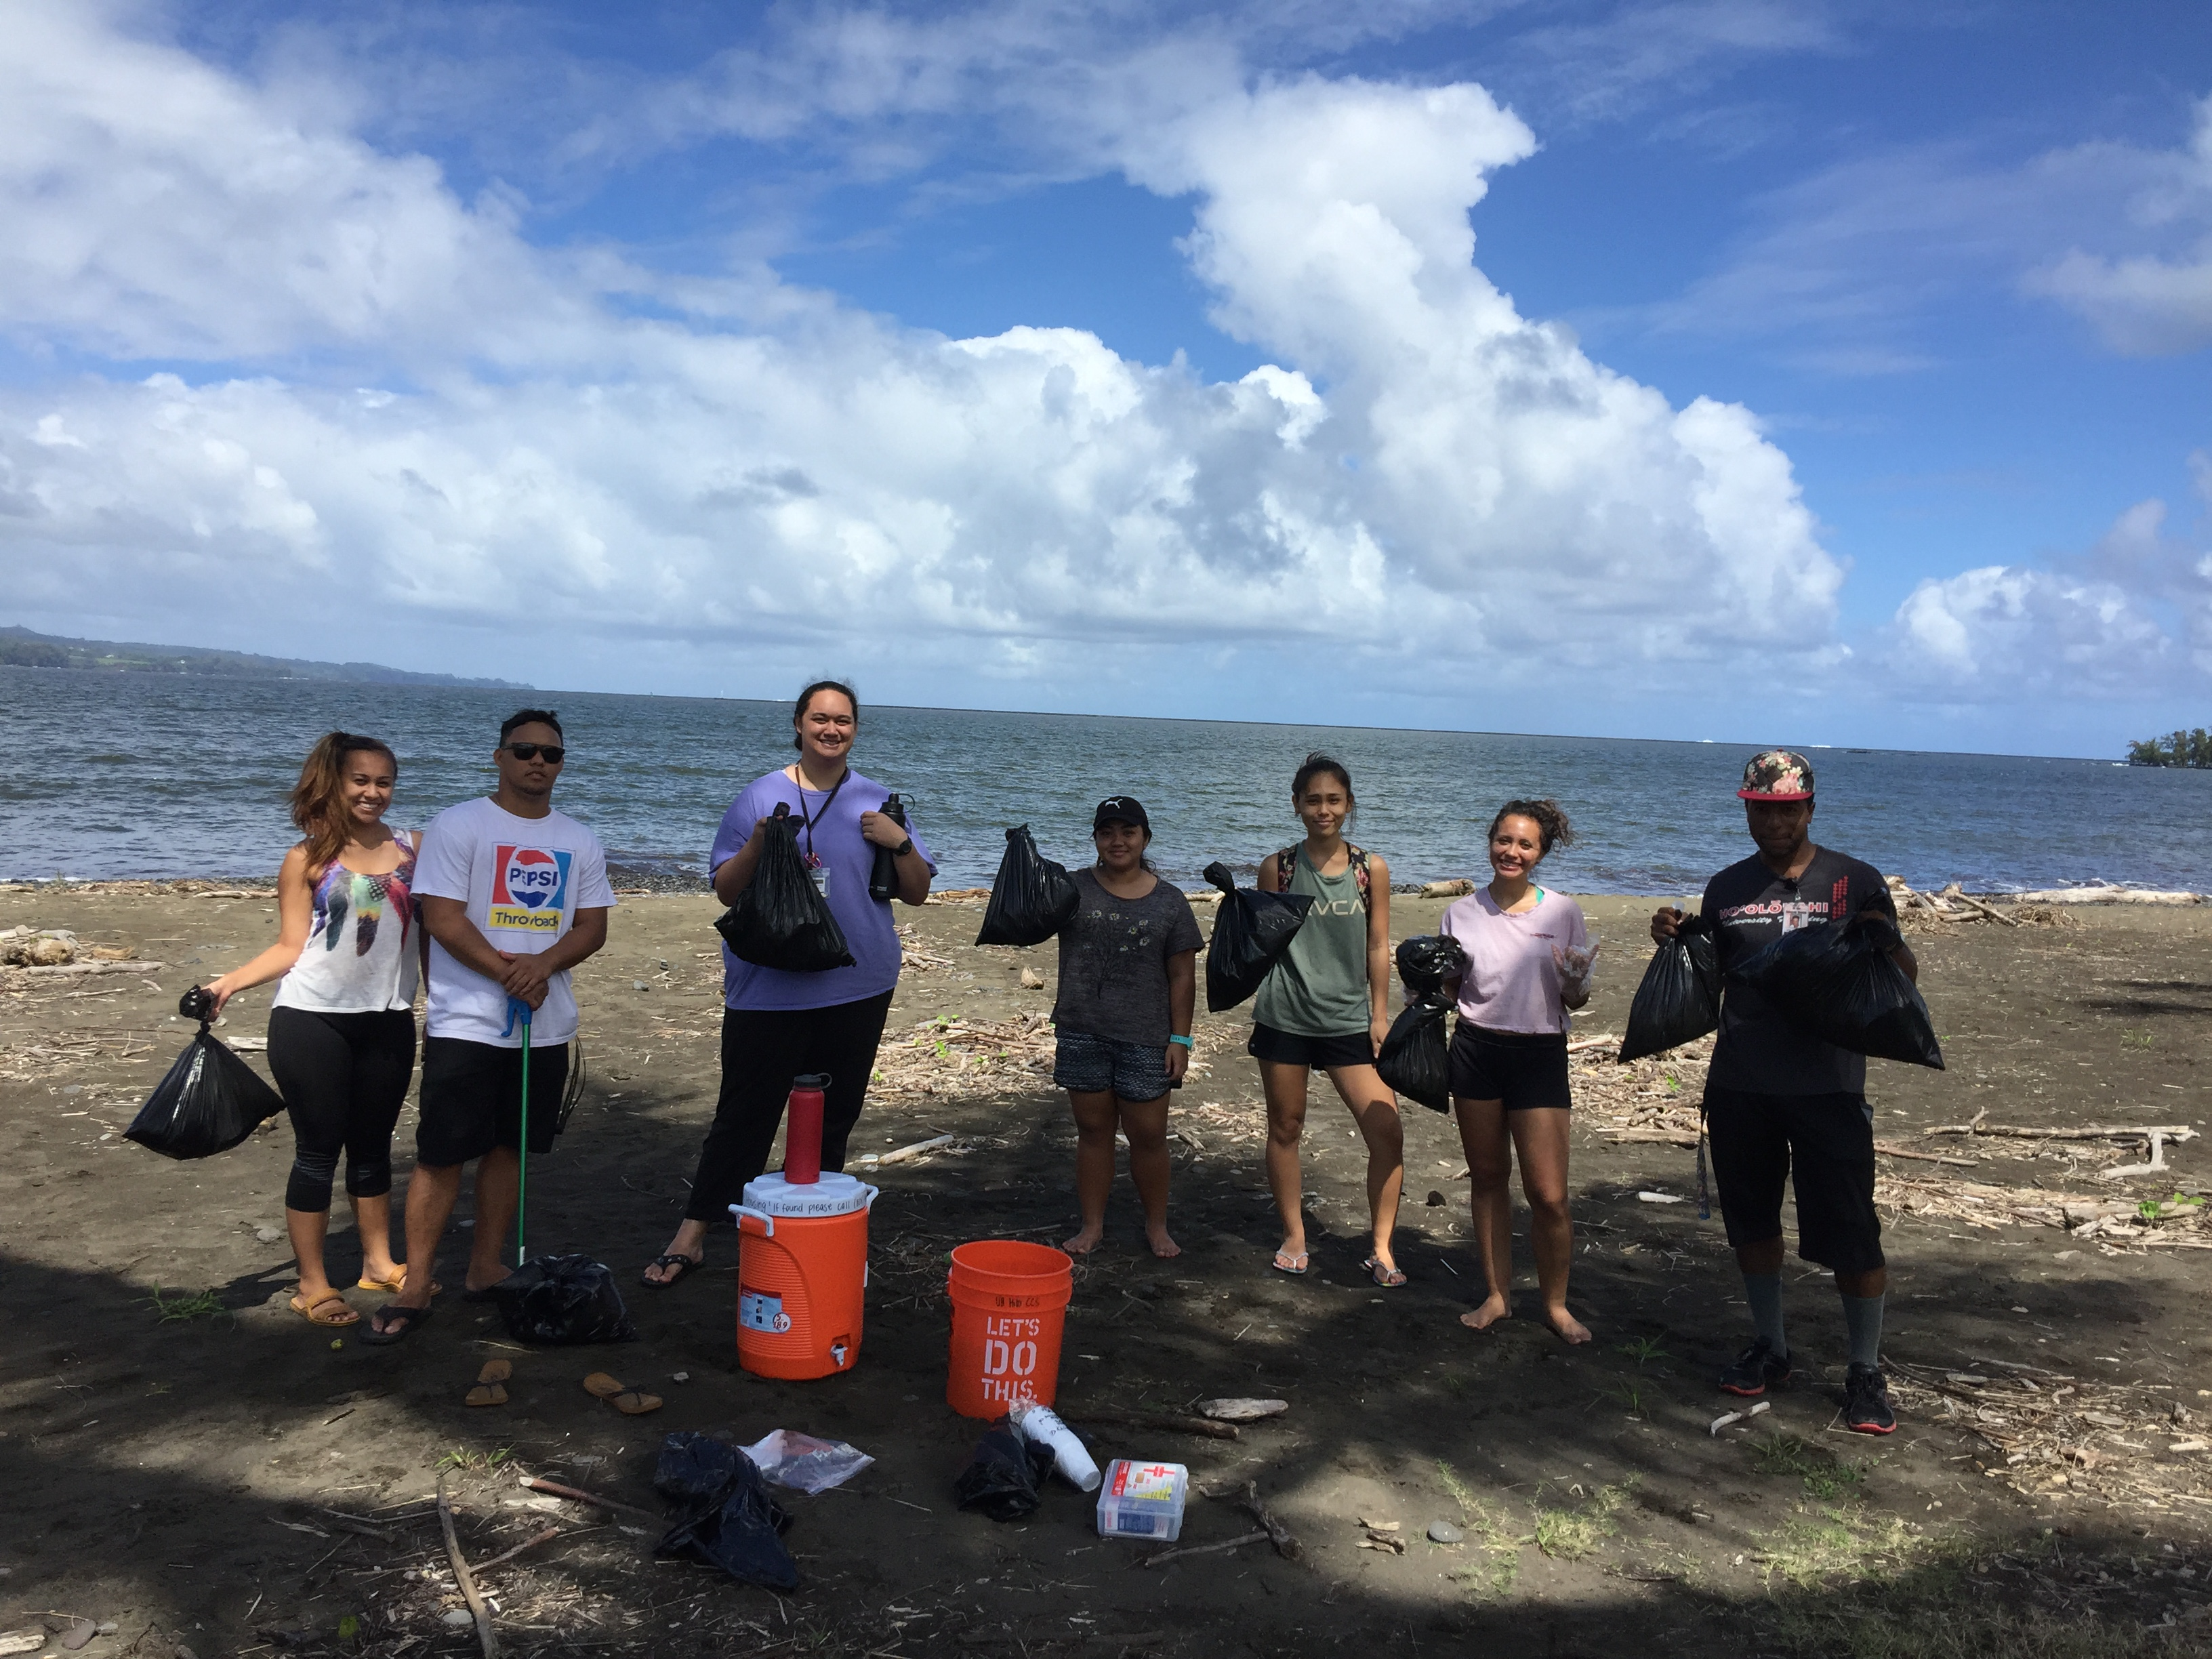 A group of students working on a beach clean-up service project